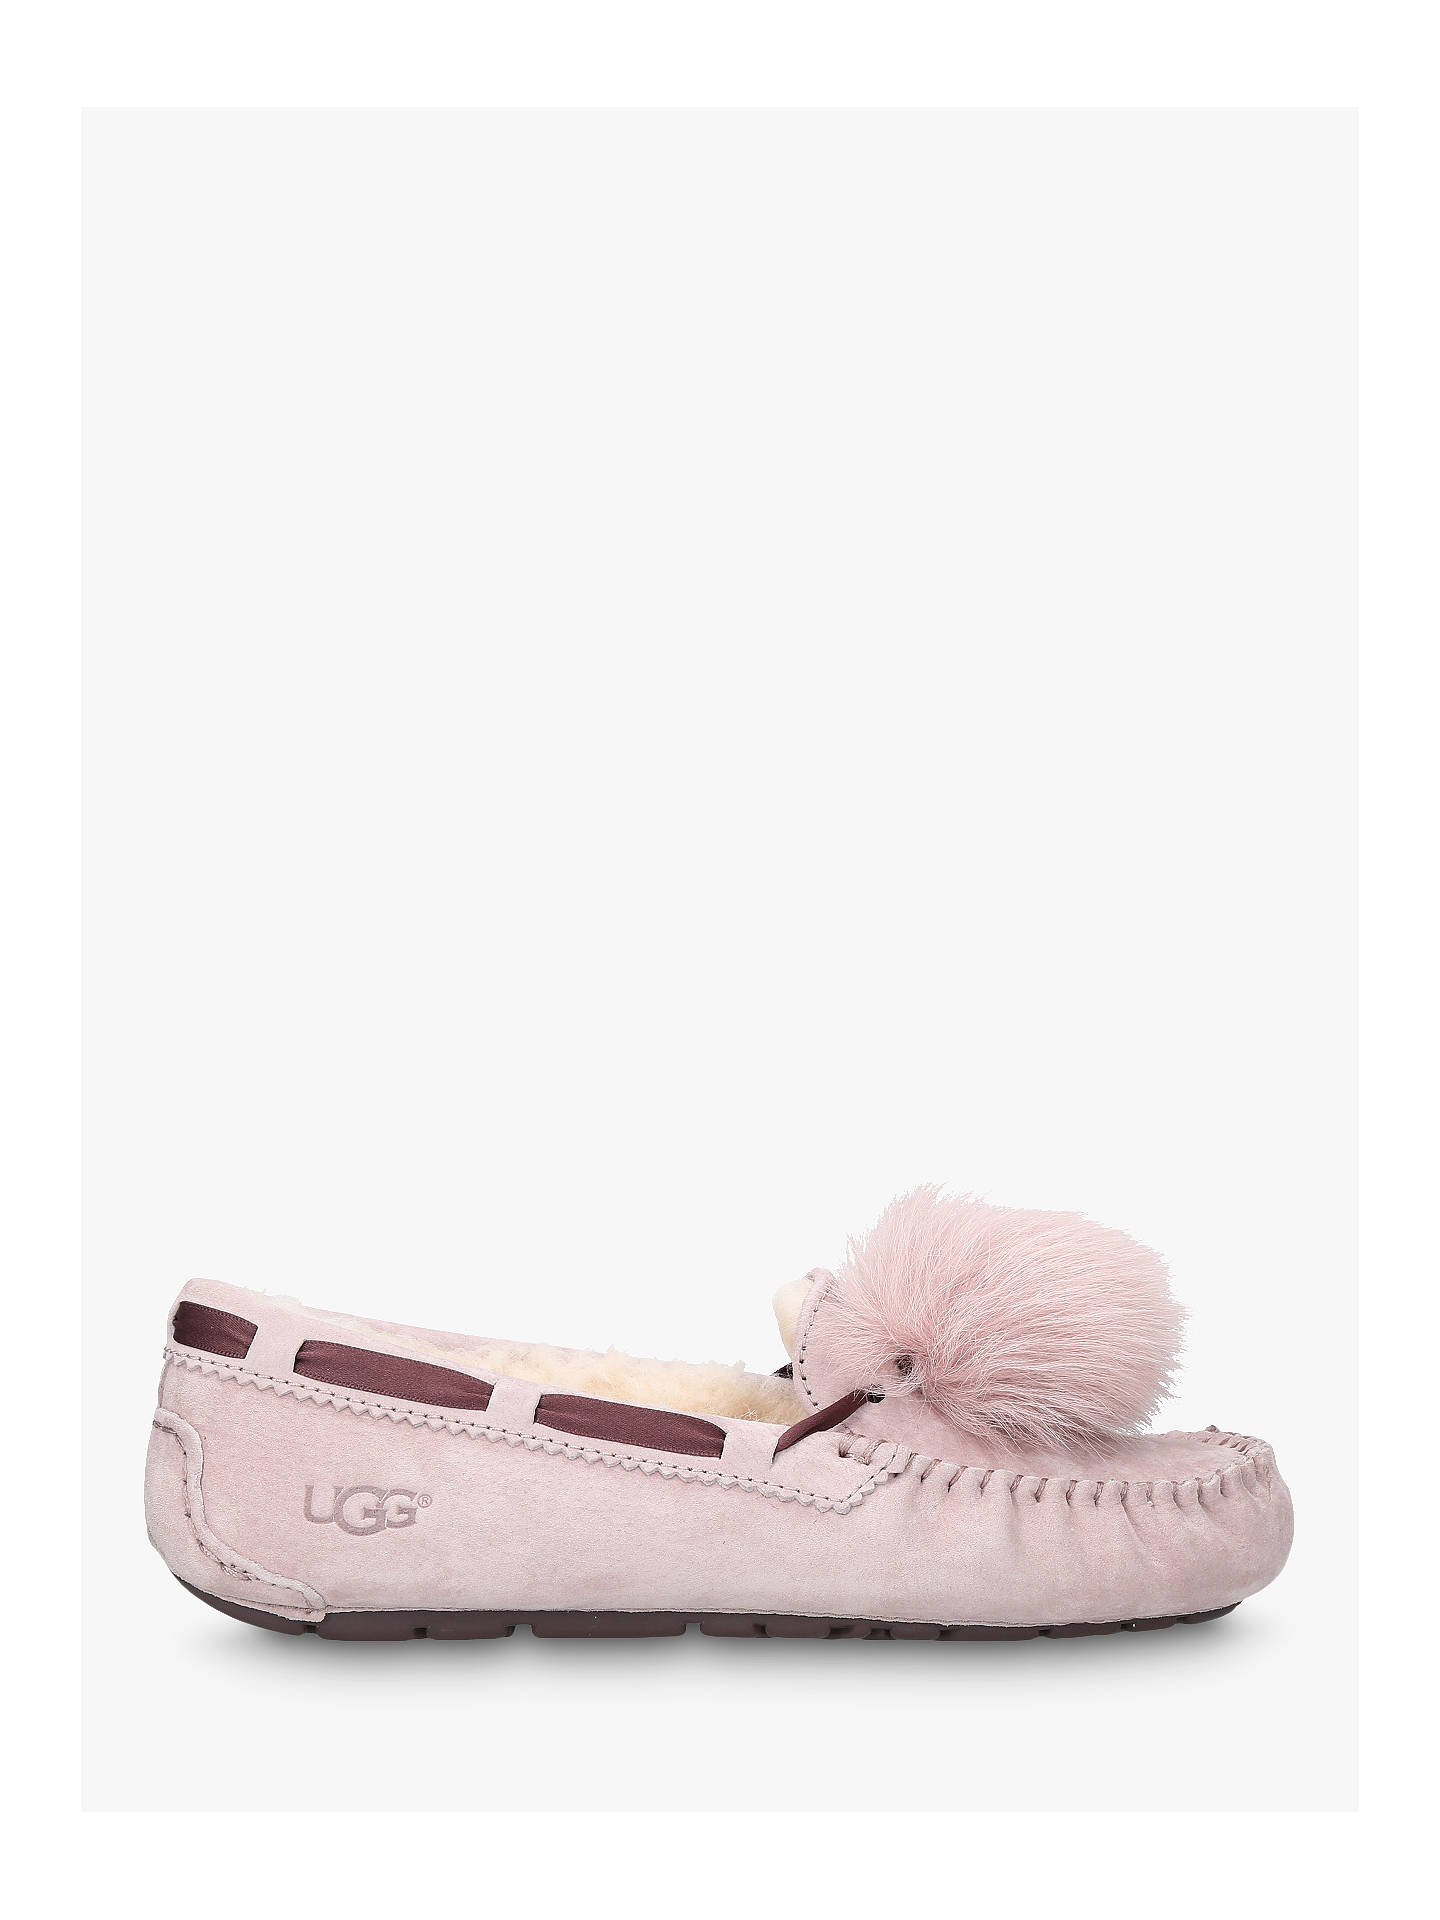 e94a23cf402 UGG Dakota Moccasin Pom Sheepskin Slippers, Pale Pink at John Lewis ...